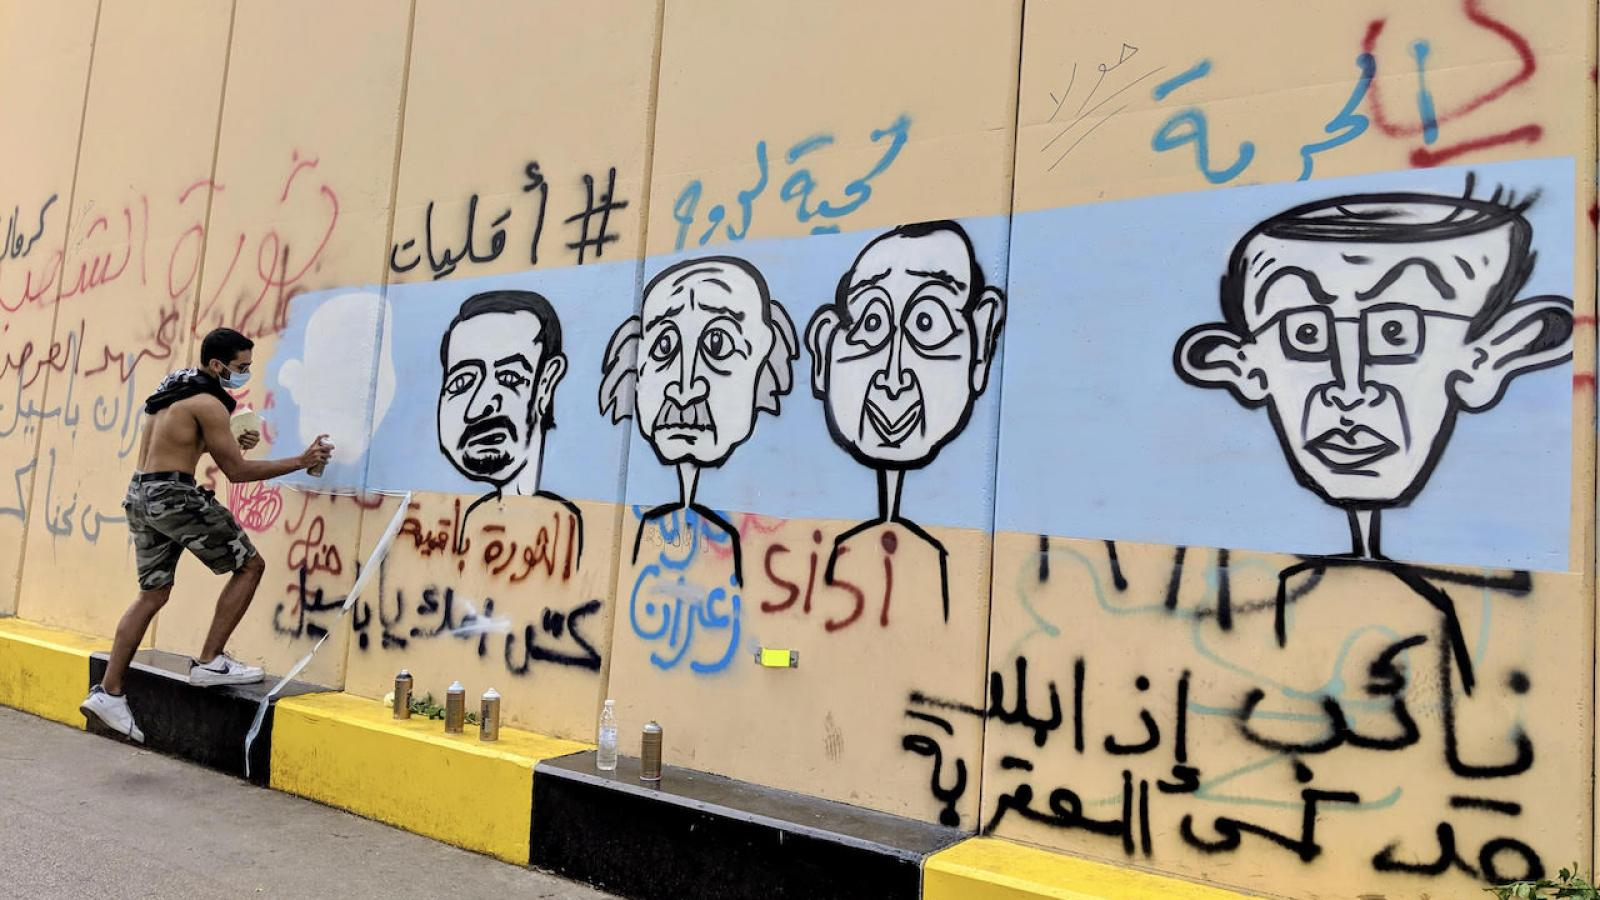 A graffiti artist paints a mural of some of Lebanon's oligarchs on a wall erected near Riad al-Solh Square in downtown Beirut. October 24, 2019. (Lara Bitar/The Public Source)